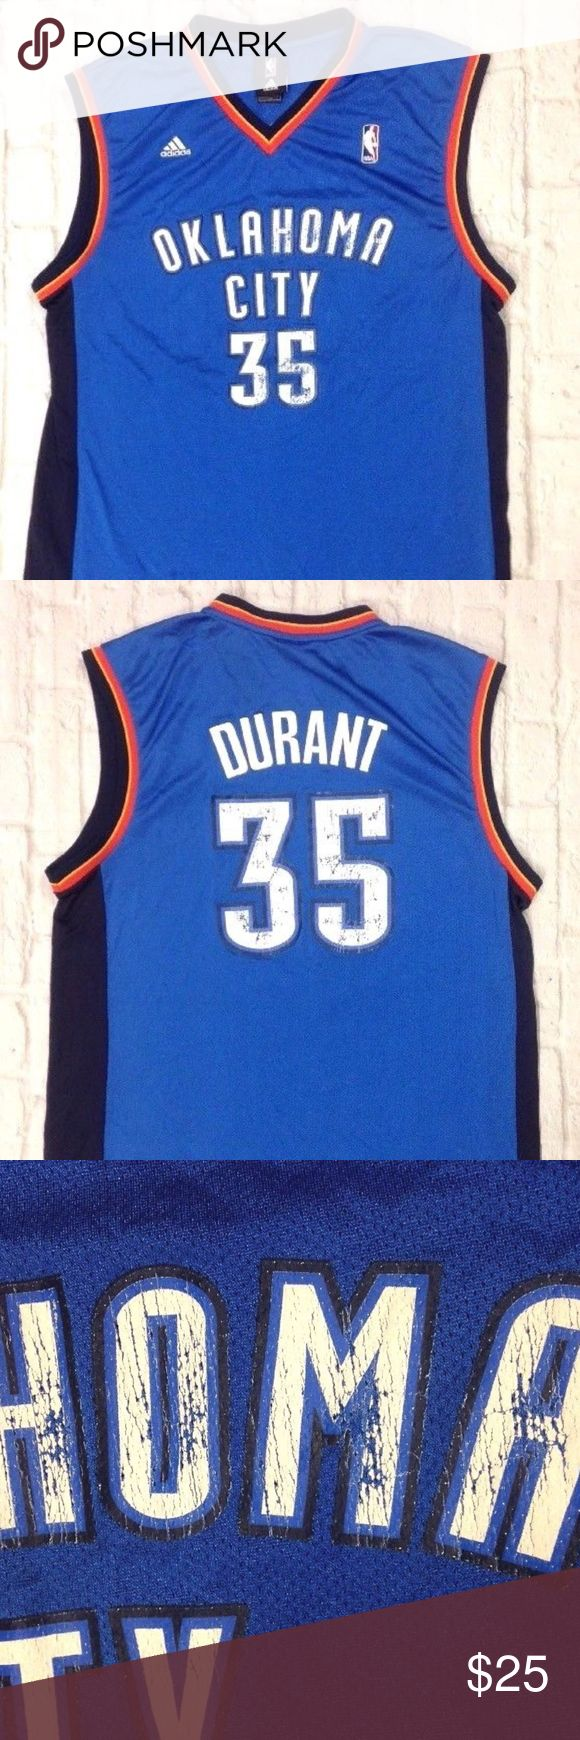 Oklahoma City THUNDER KEVIN DURANT nba JERSEY Oklahoma City THUNDER KEVIN DURANT #35 BASKETBALL JERSEY ADIDAS  MEN SIZE LARGE  SCREEN PRINTED WITH WEAR ON THE NUMBERS & LETTERS NO HOLES, NO STAINS adidas Shirts